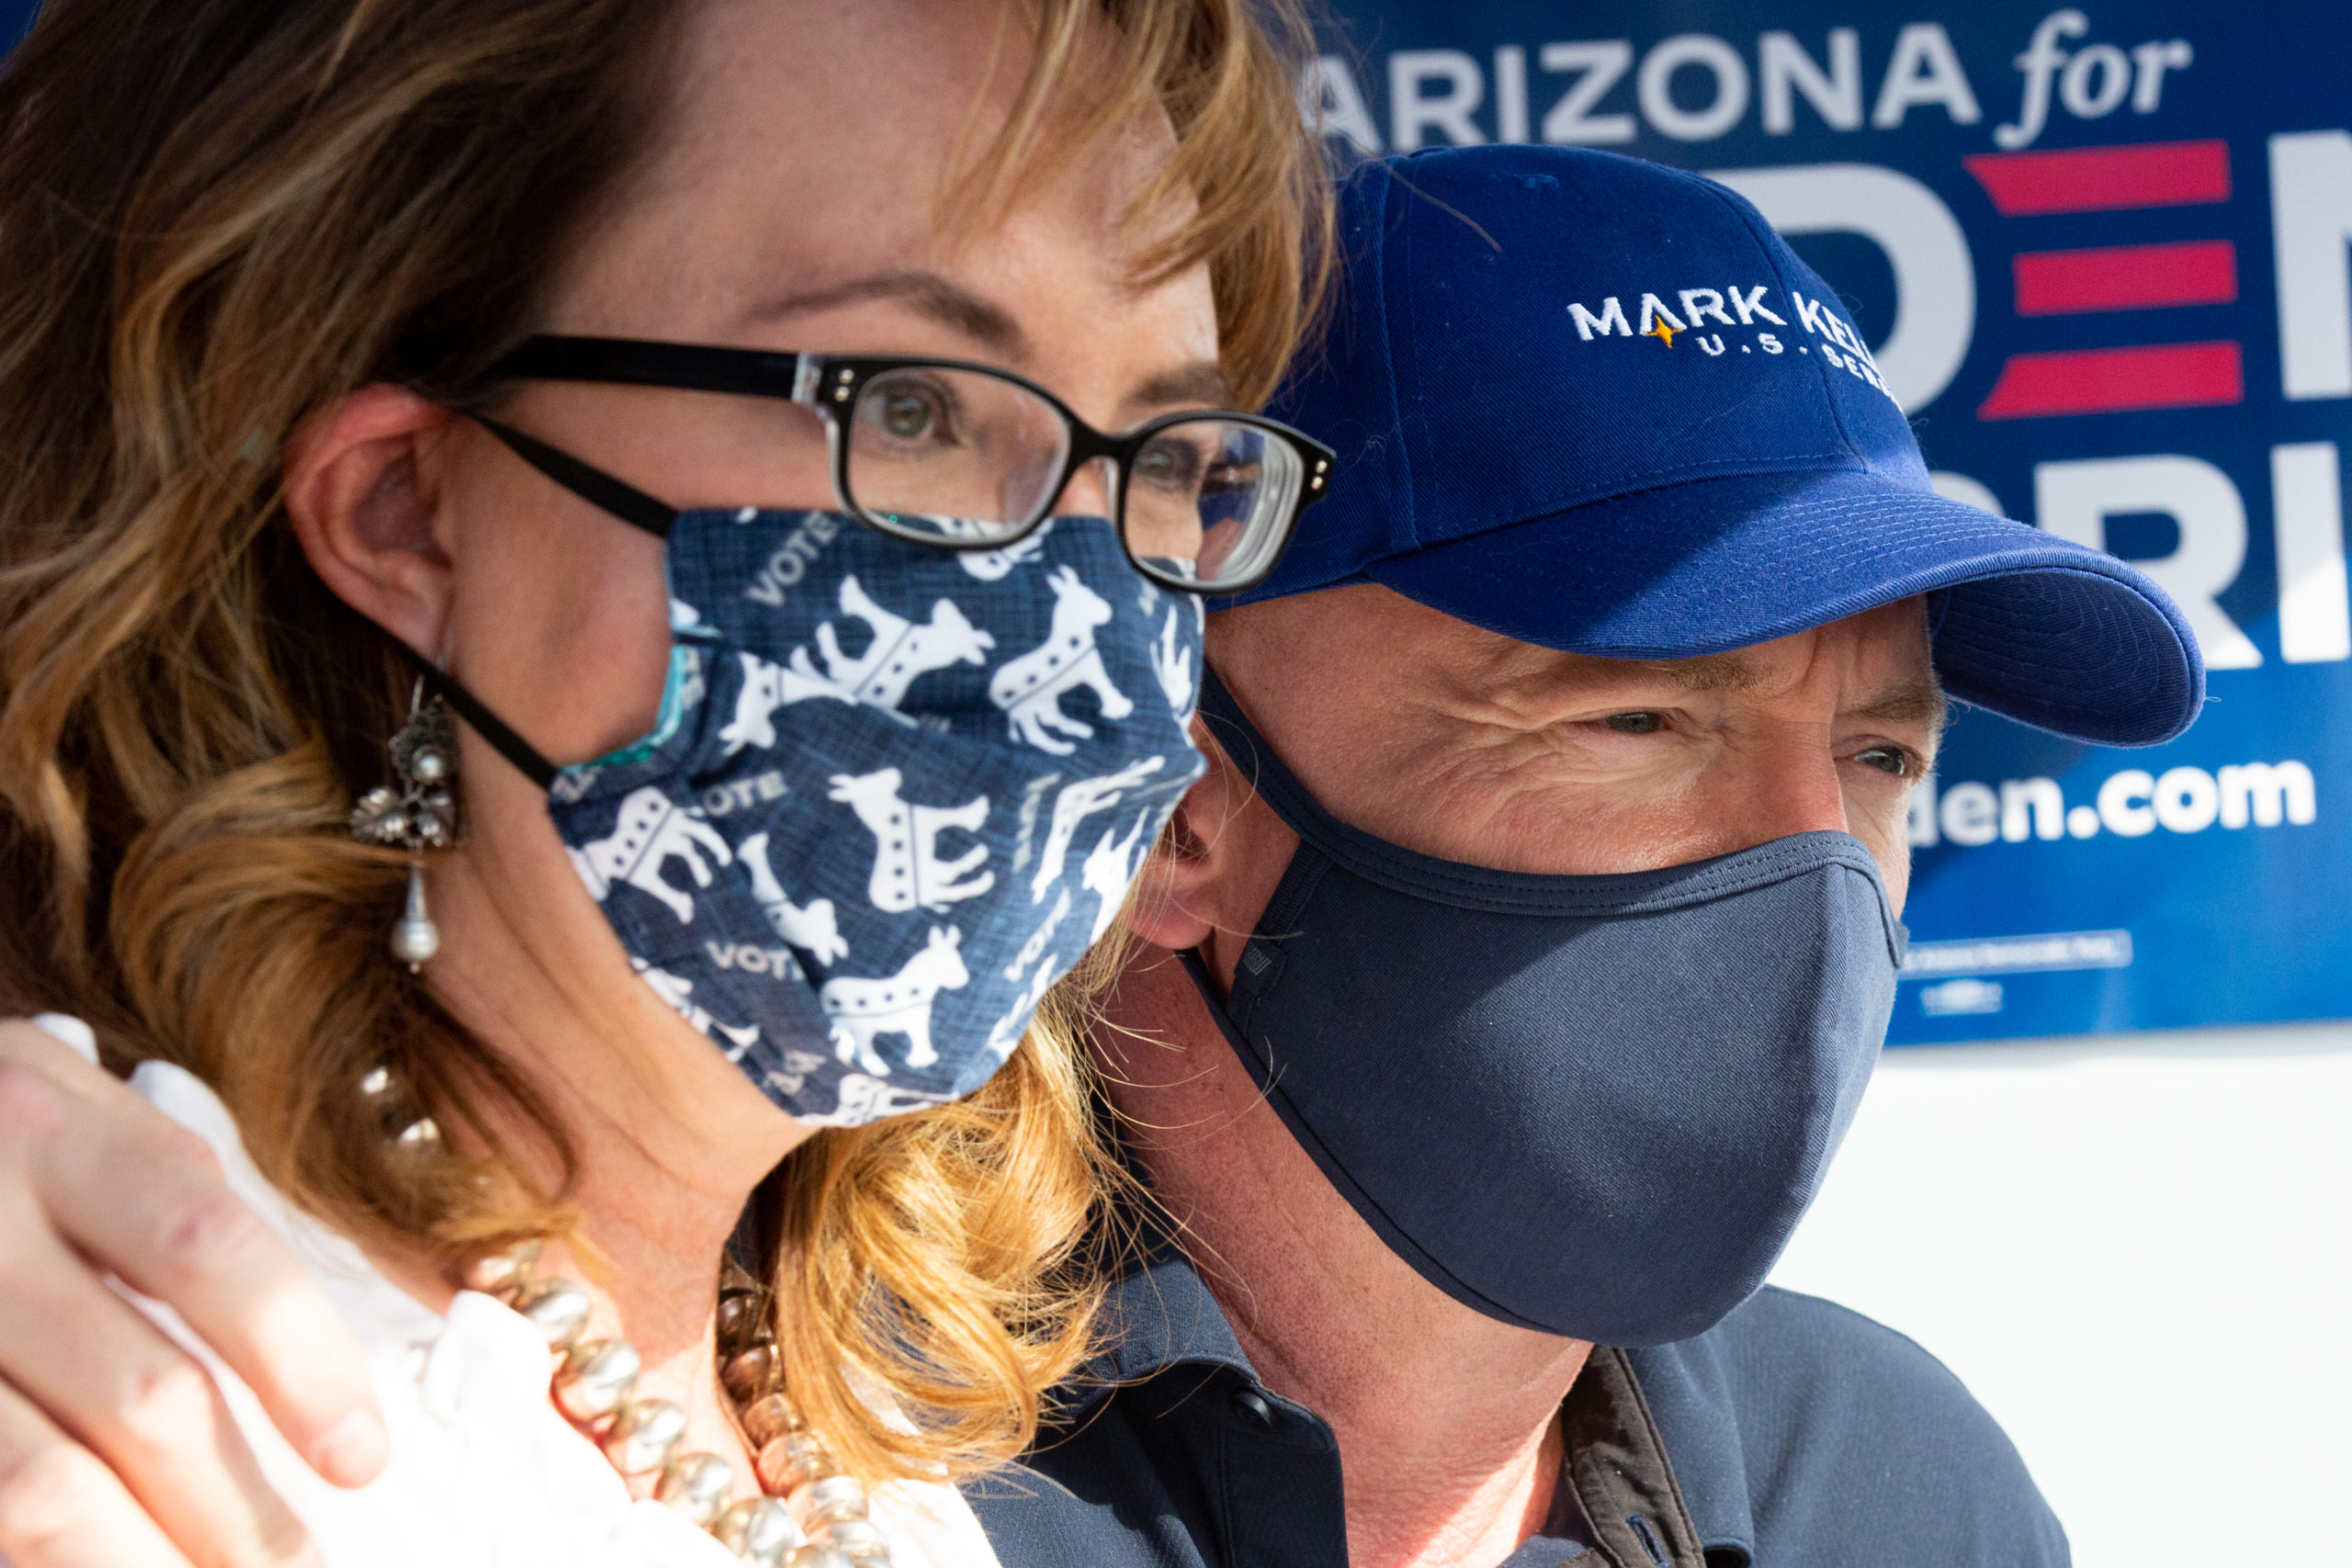 PHOENIX, AZ - OCTOBER 30: U.S. Democratic Senate candidate Mark Kelly and former Arizona congresswoman Gabrielle Giffords greet voters on the last day of early voting at Mountain Park Health Center on October 30, 2020 in Phoenix, Arizona. (Photo by Courtney Pedroza/Getty Images)